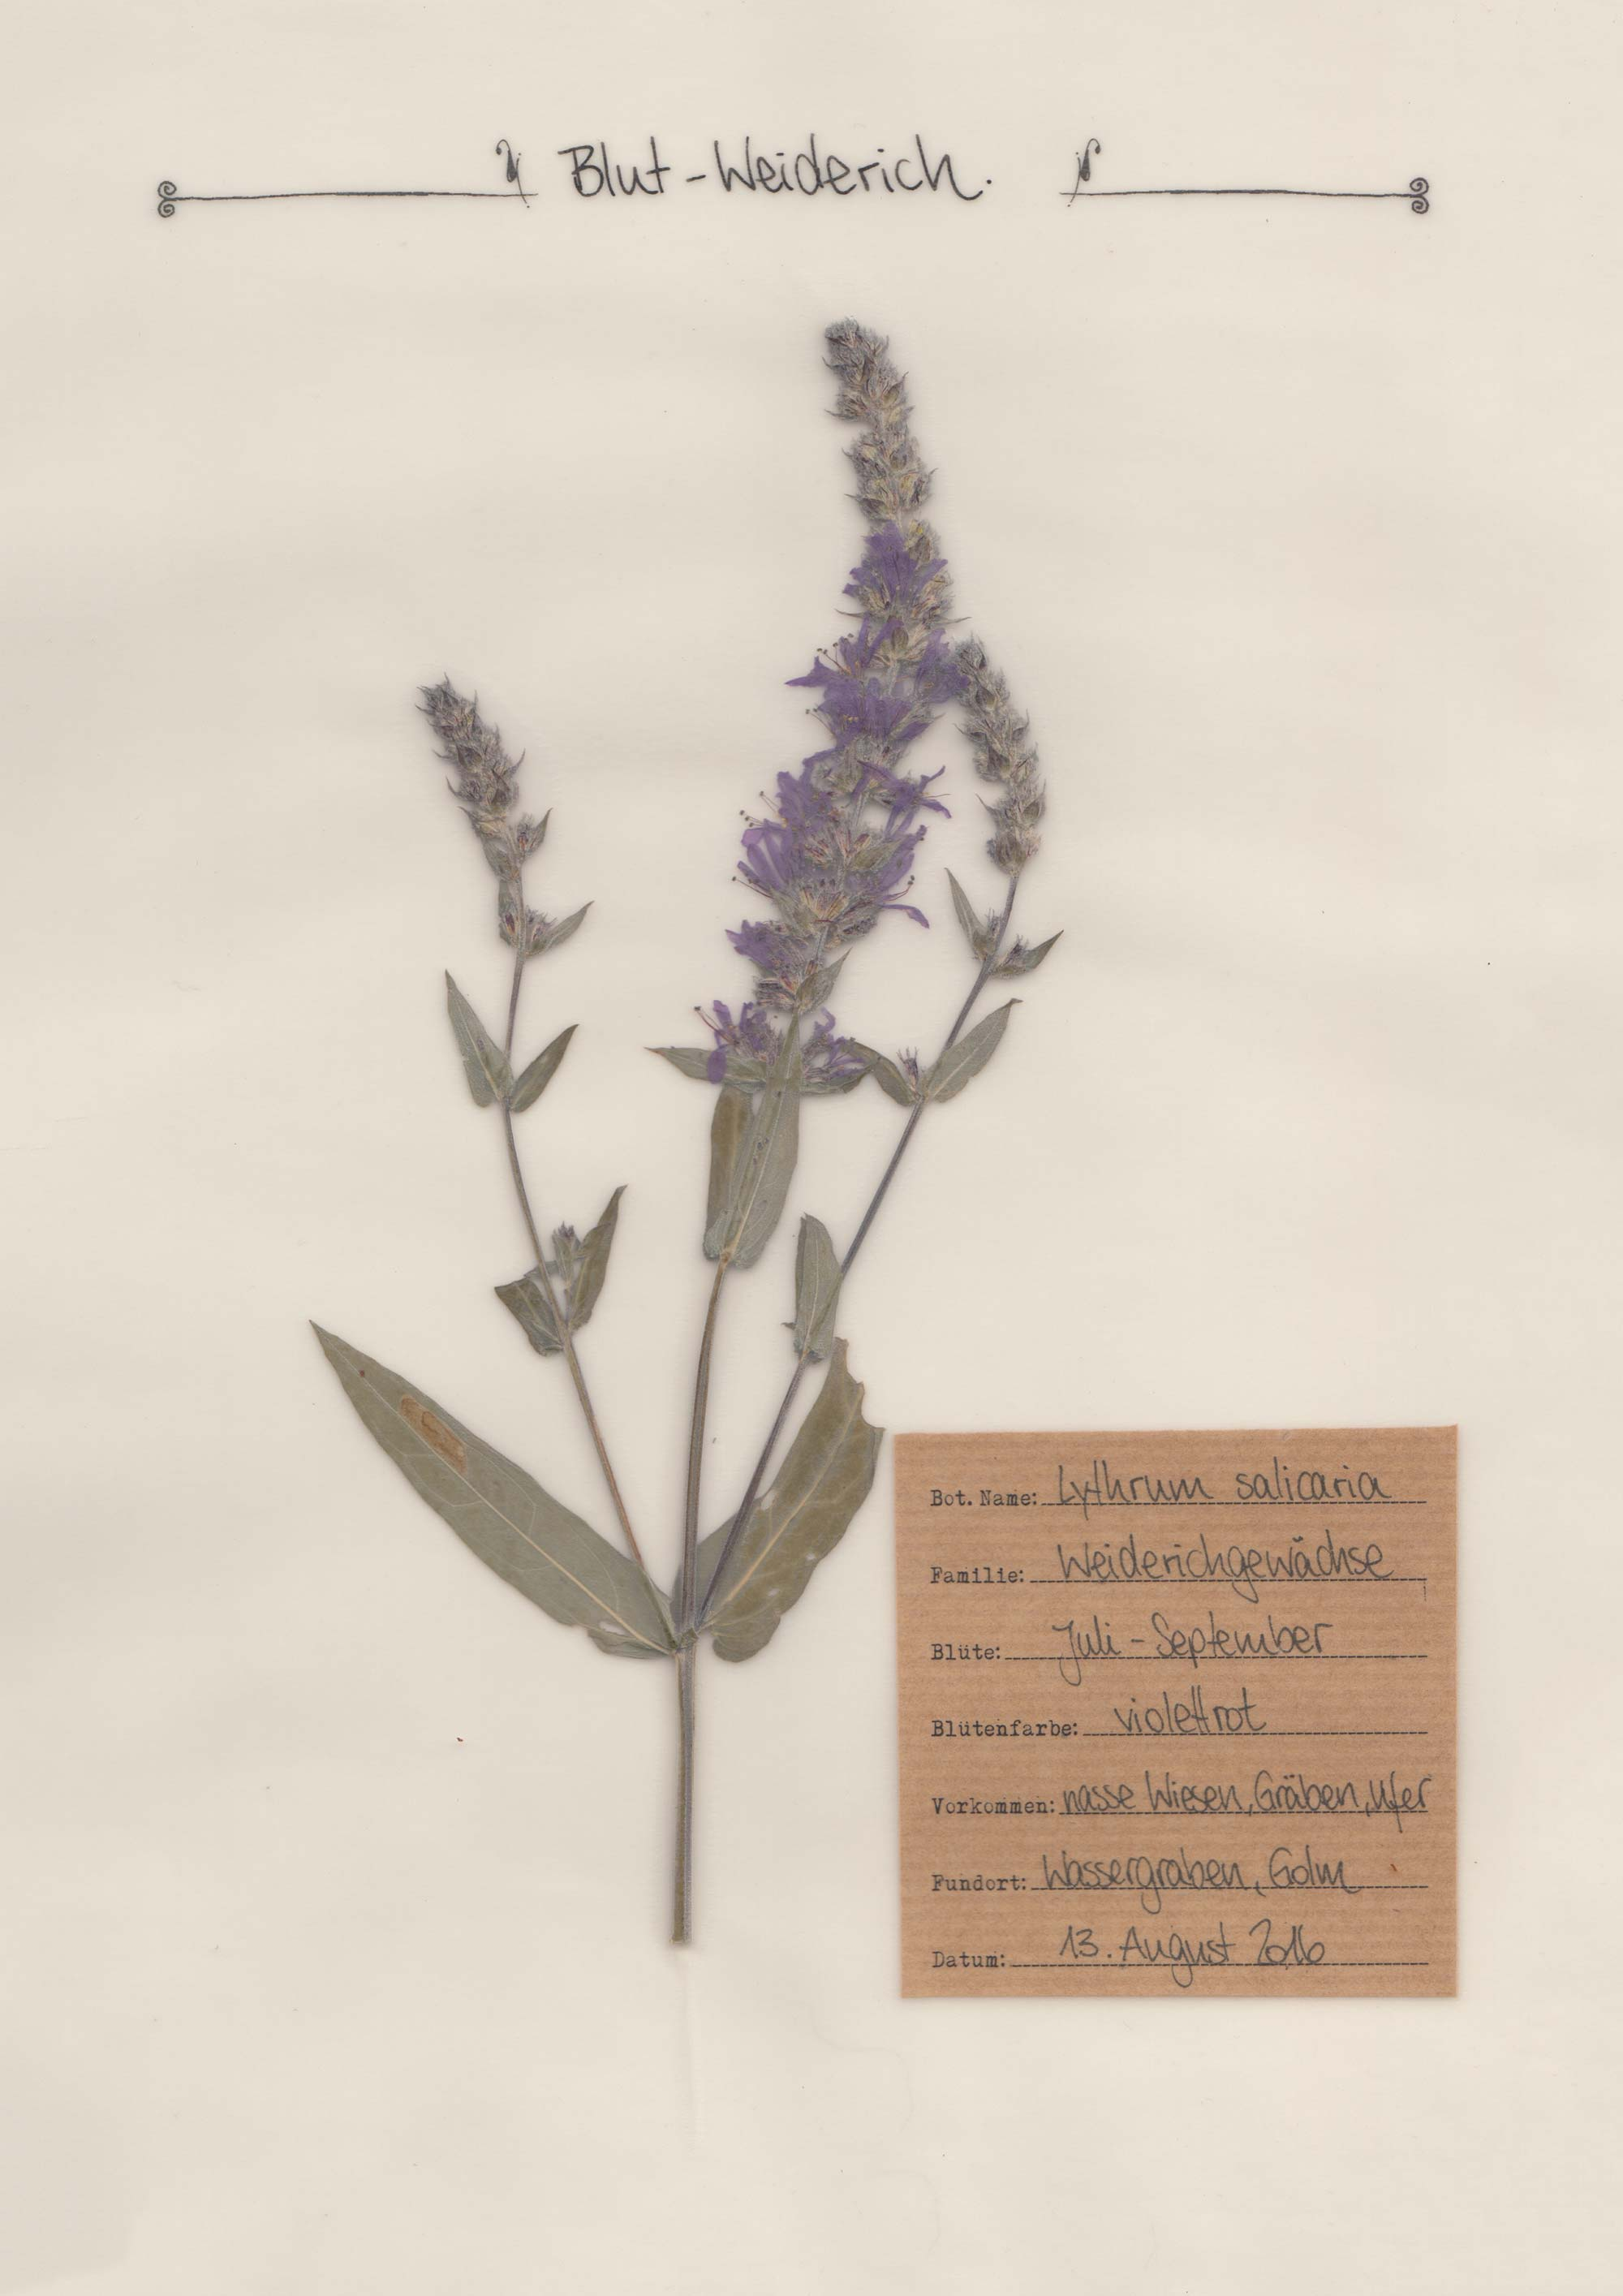 Blut-Weiderich – Herbal Hunter Herbarium